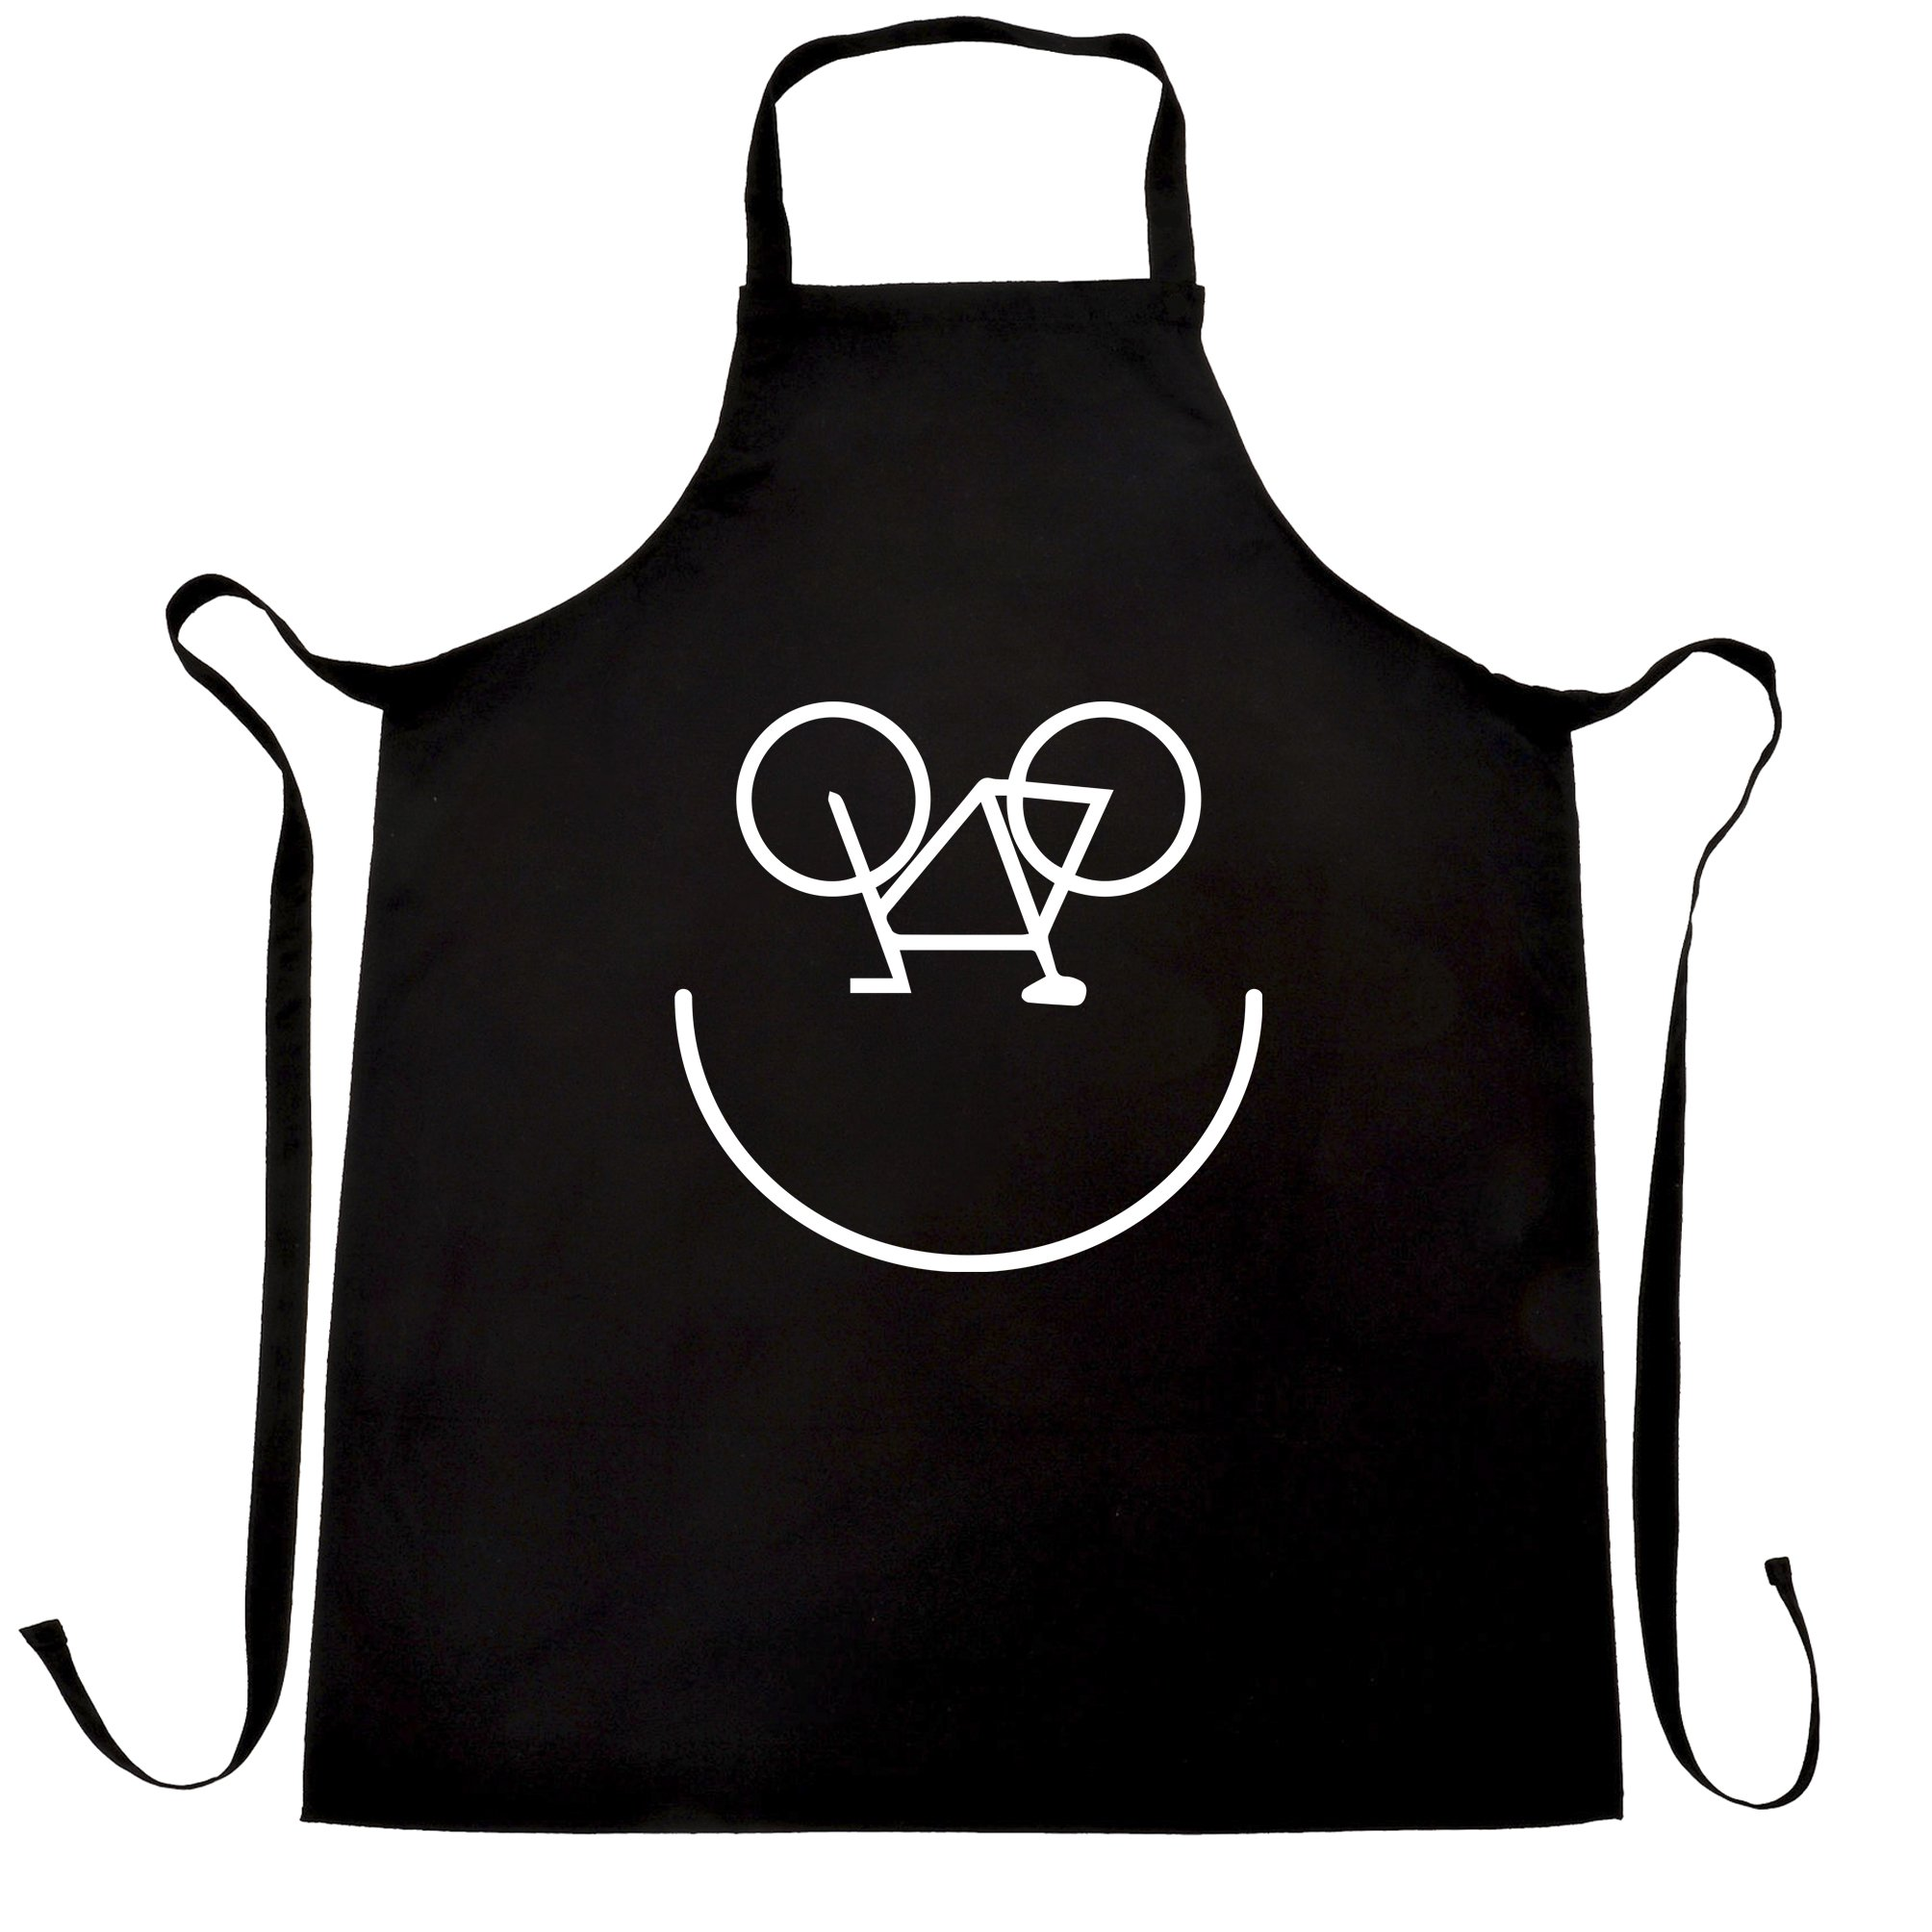 Cycling Chefs Apron Bicycle Smiley Face Logo Black One Size